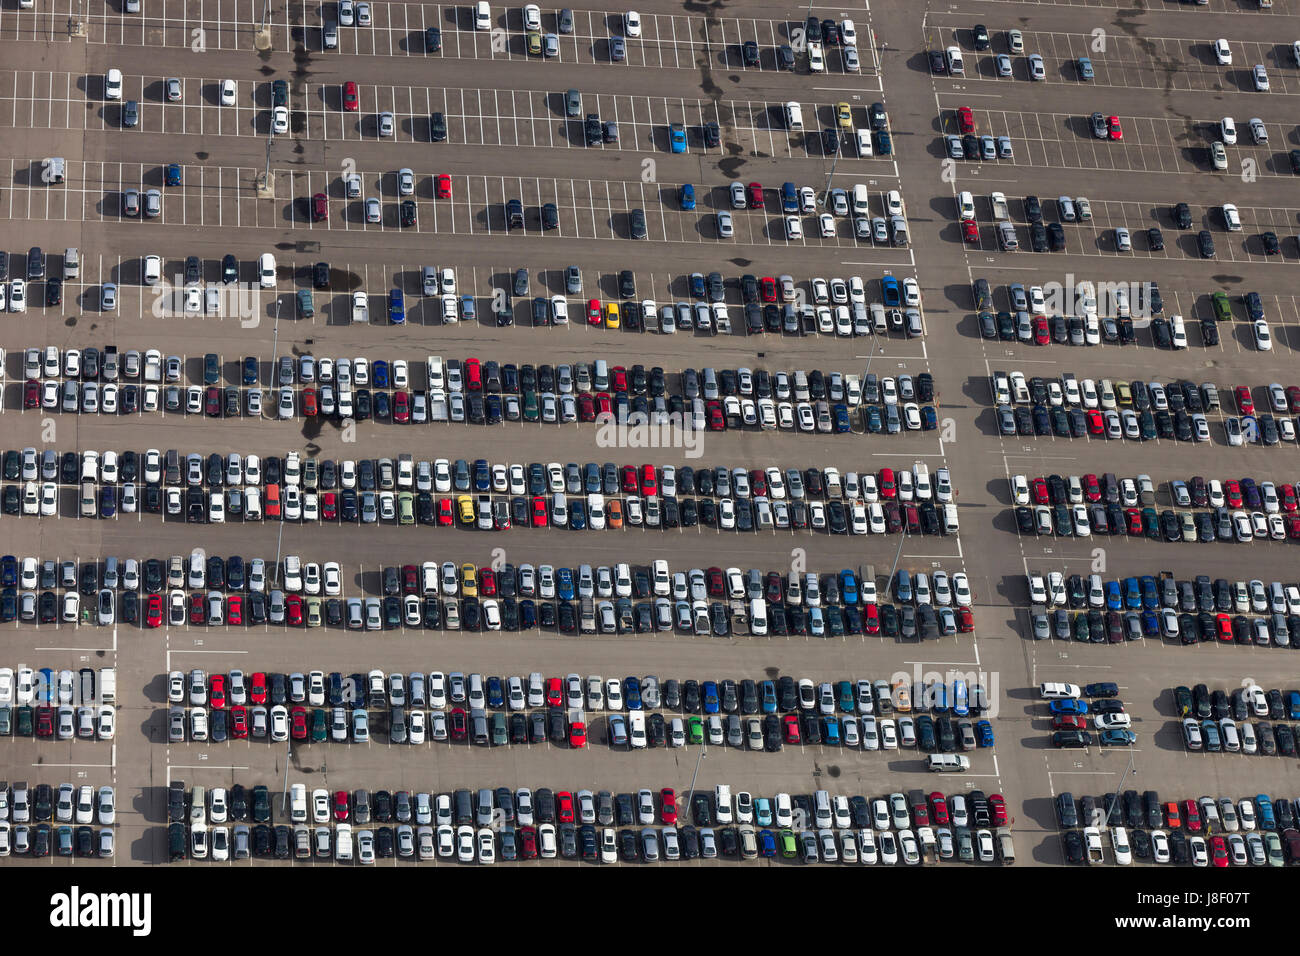 Large car parking with a large number of cars. - Stock Image